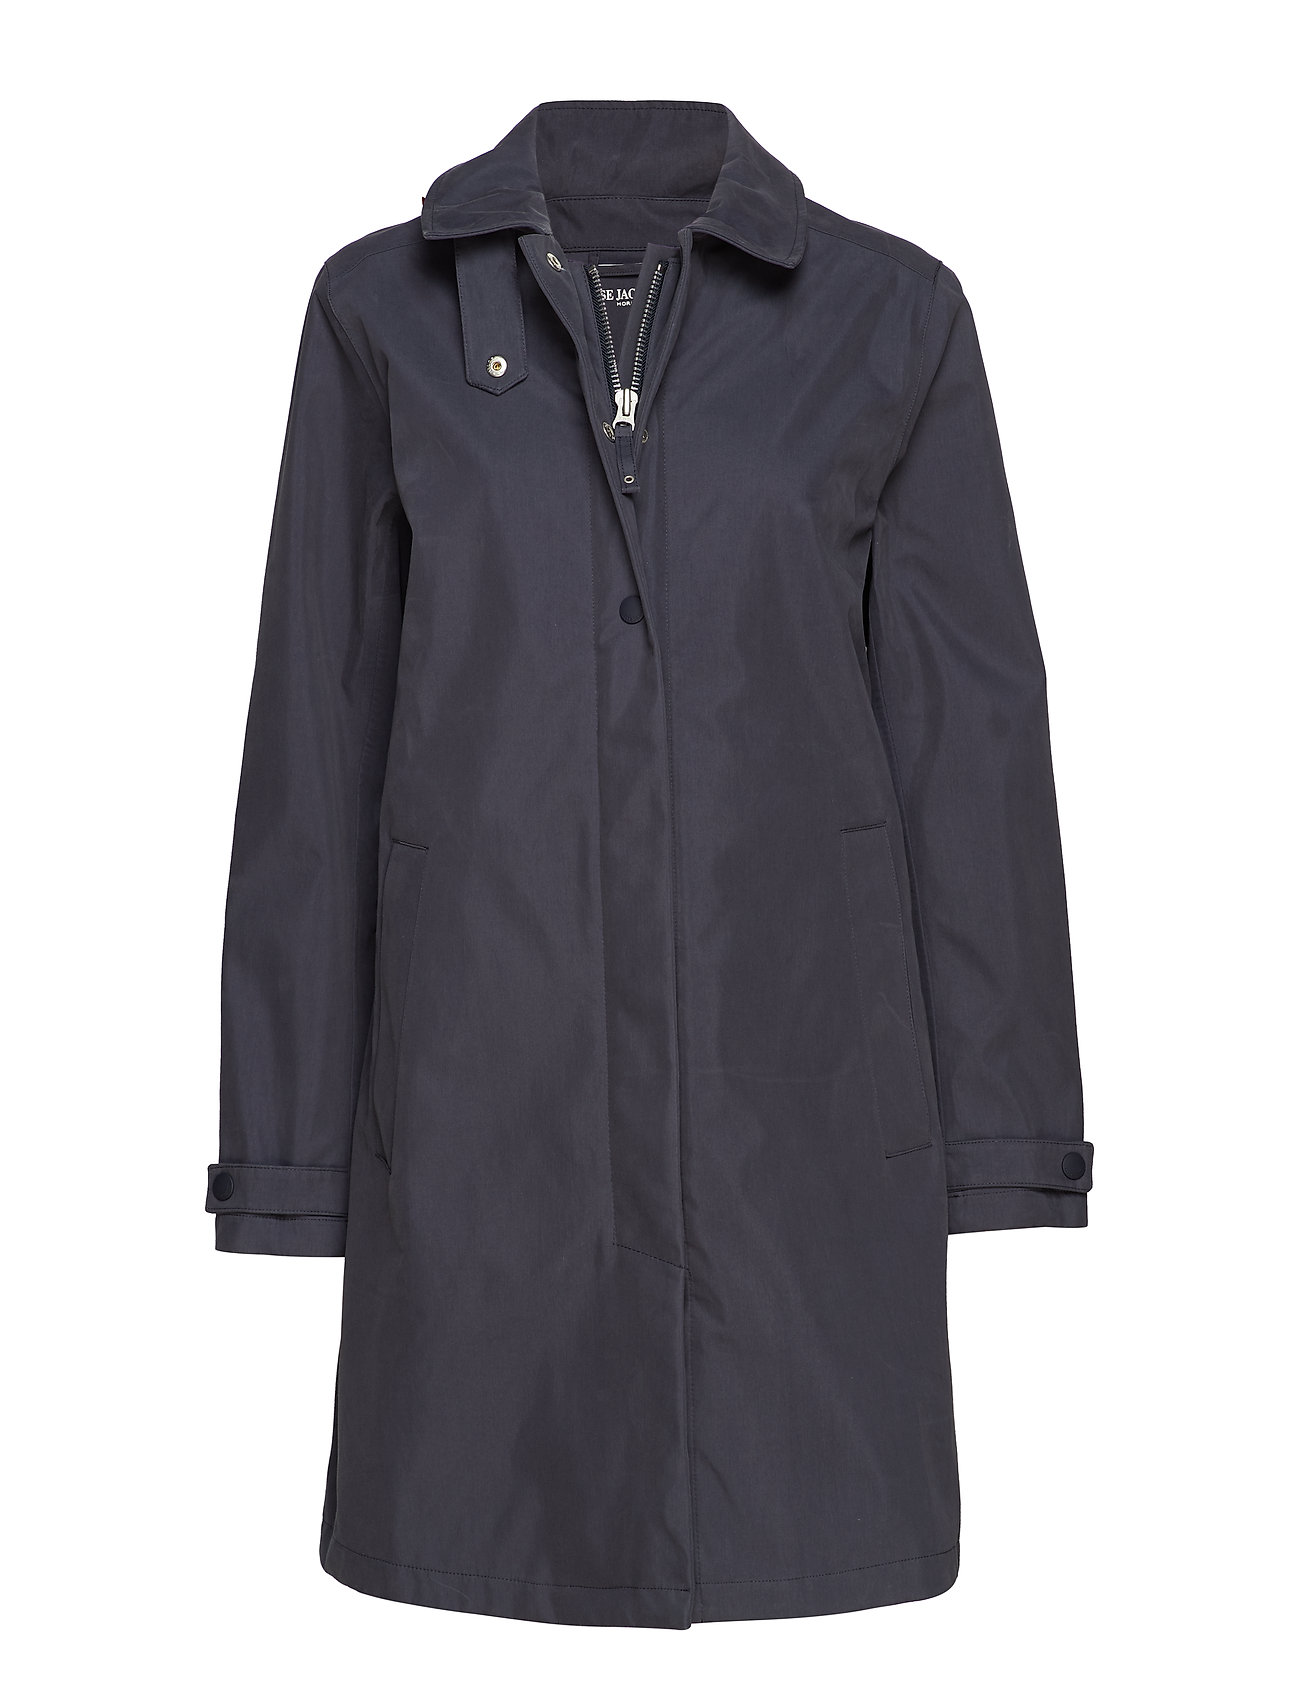 Ilse Jacobsen RAINCOAT - DARK INDIGO